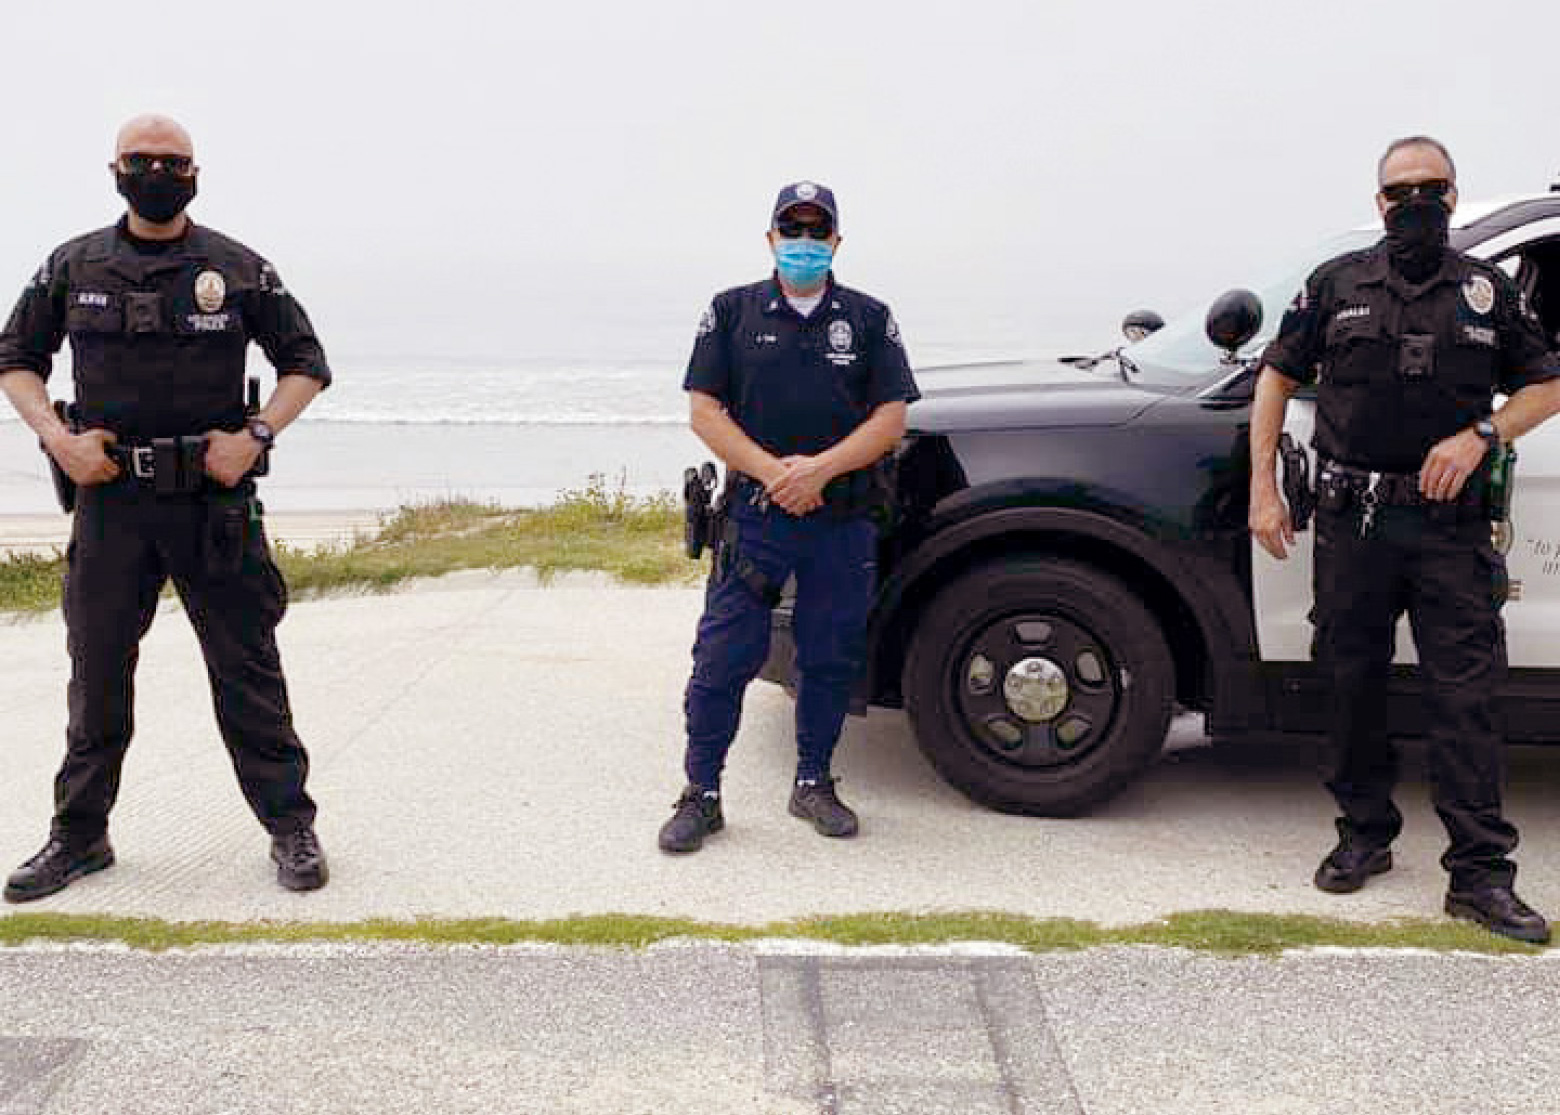 lapd-reserves-go-above-and-beyond-during-covid-19-27-captain-jonathan-tom-west-los-angeles-area-thanks-reserve-police-officers-bernard-khalili-and-george-alwan-will-rogers-state-beach